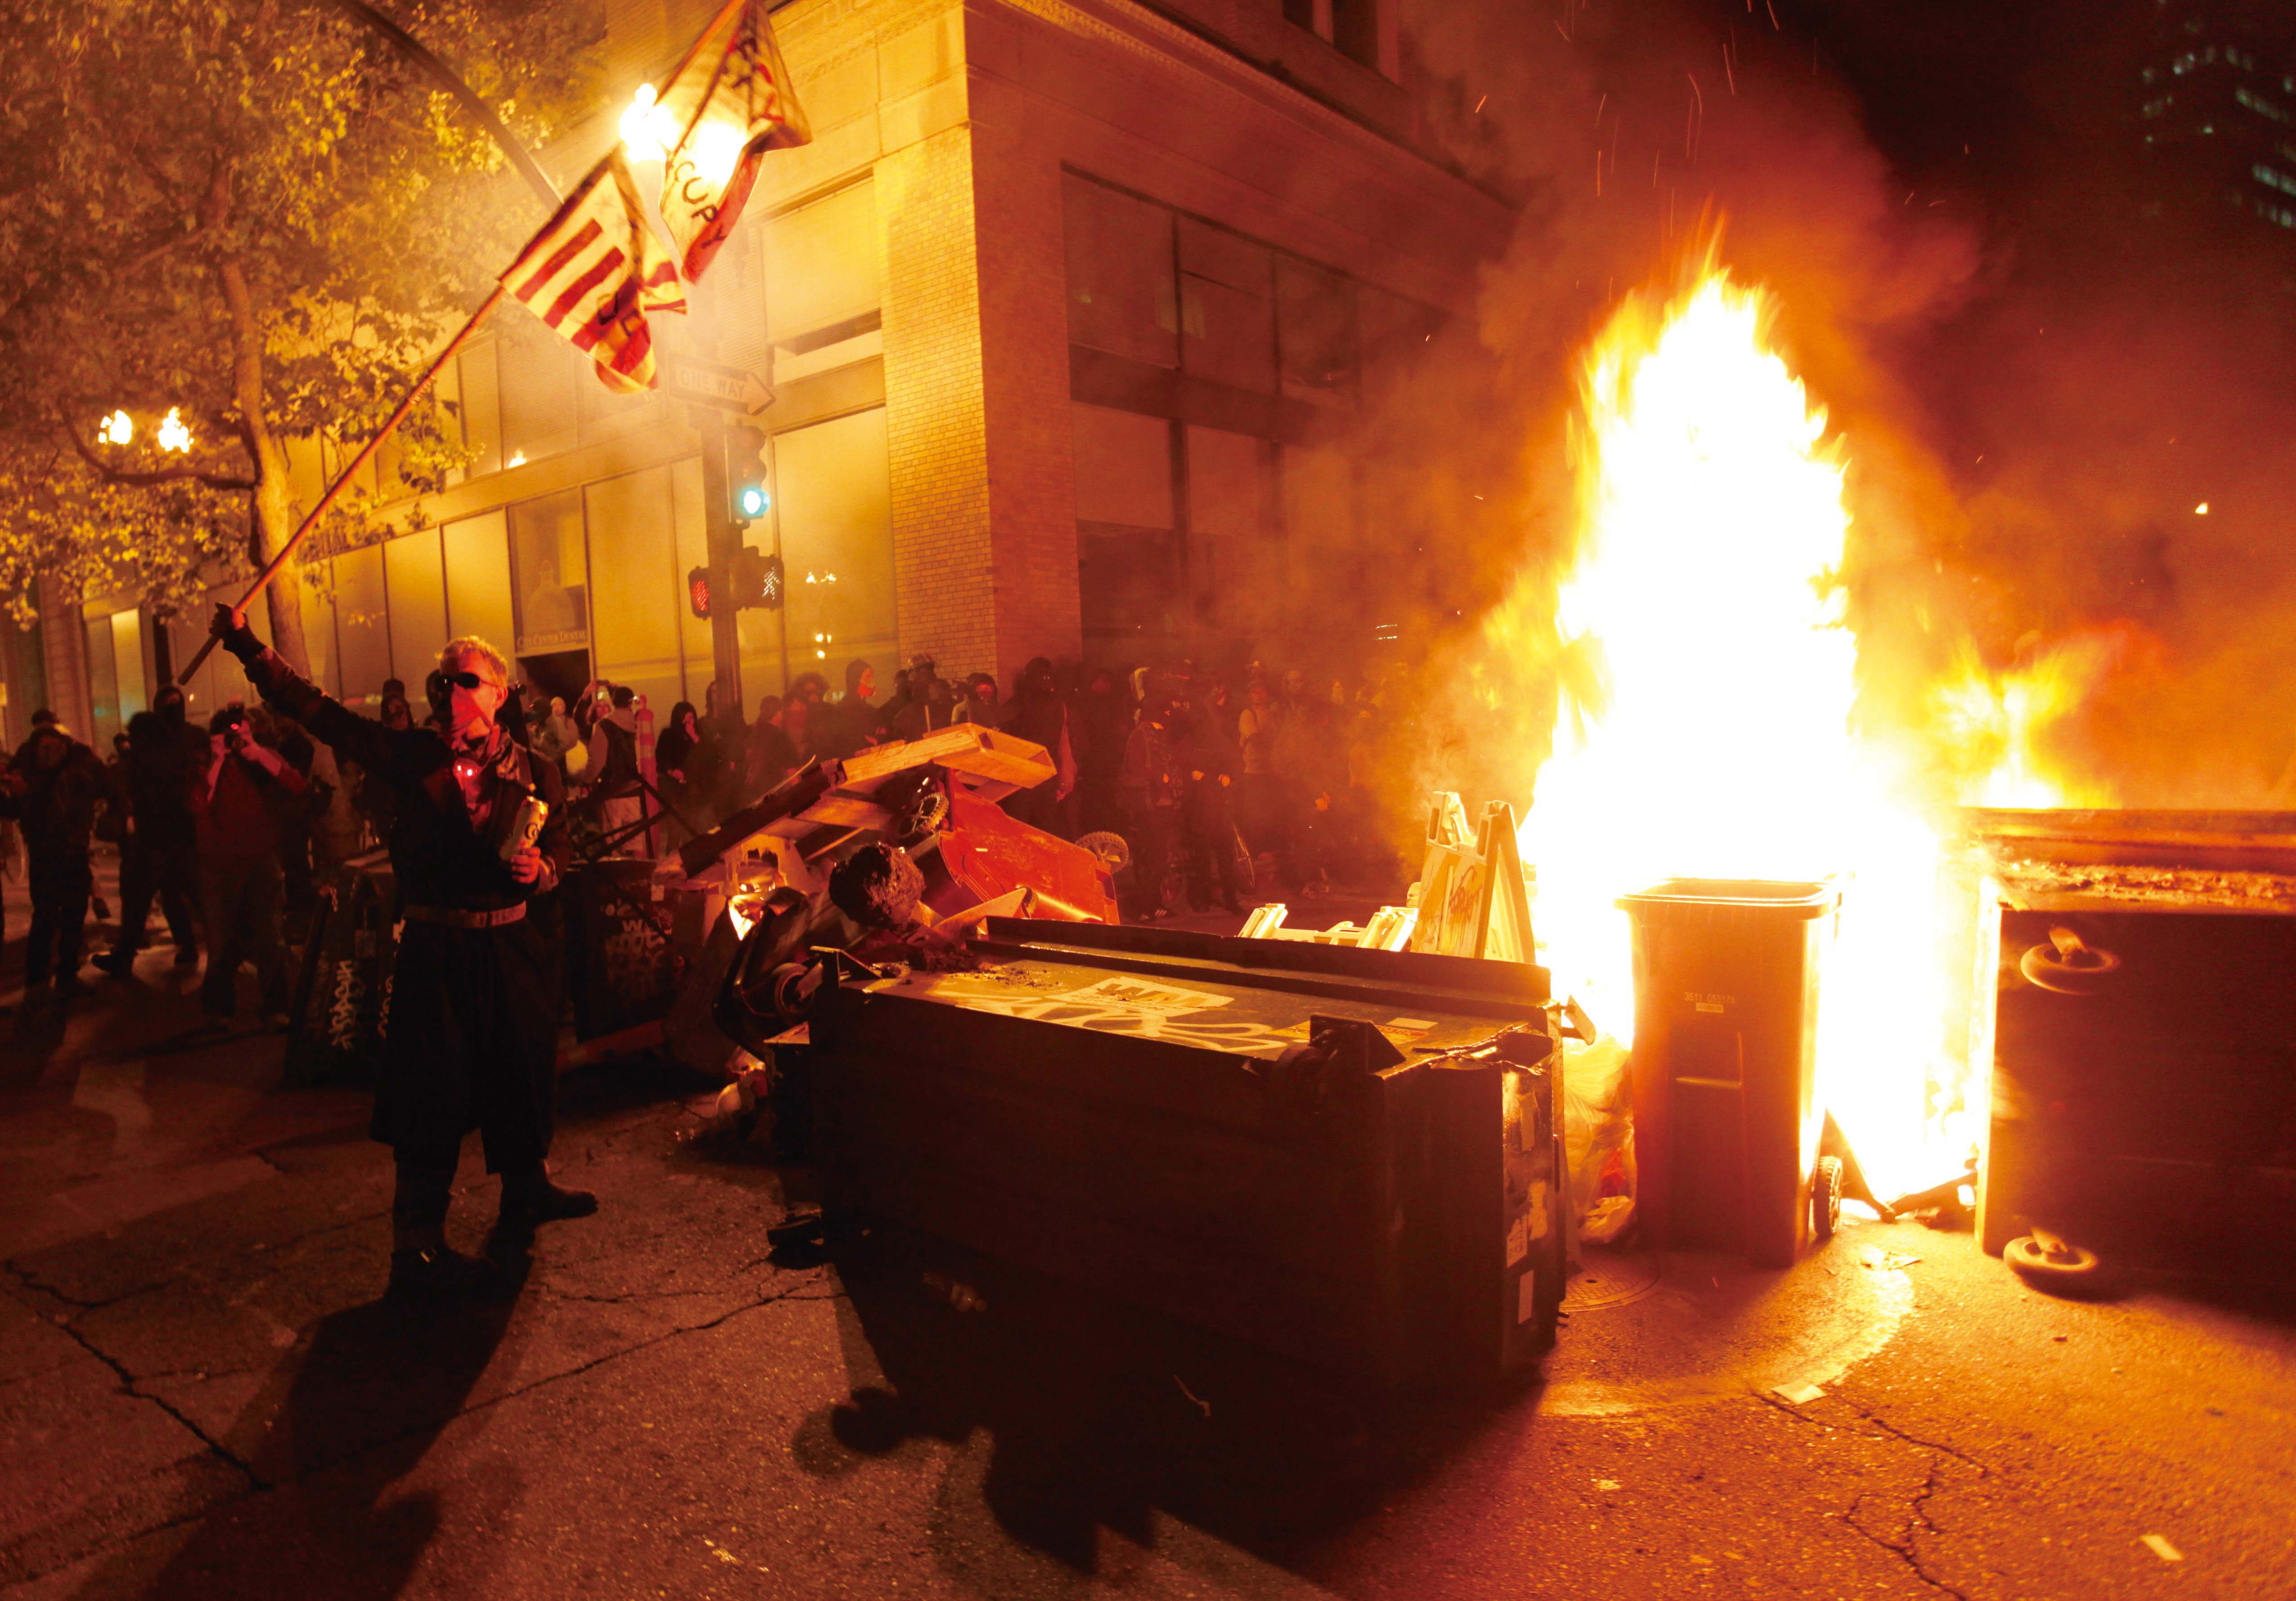 The Occupy Oakland protesters set a fire on trash to make a barricade as the police officers form a line to disperse the protesters on November 3, 201...